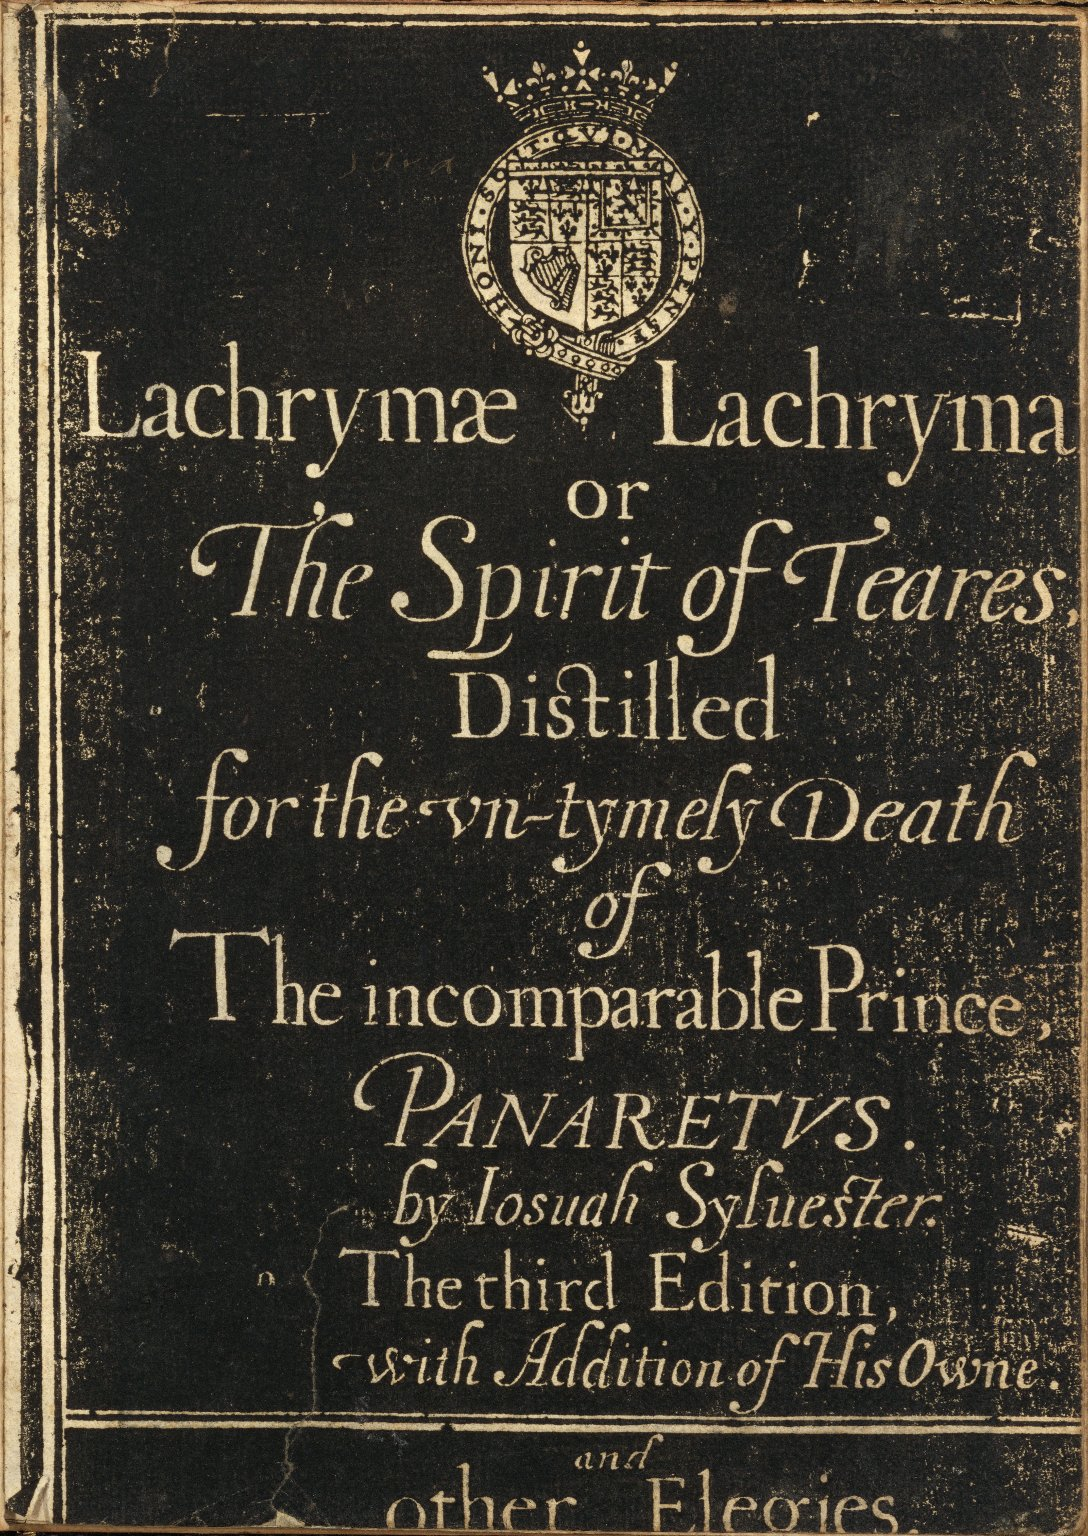 Lachrymæ lachrymaru[m] or The spirit of teares distilled for the vn-tymely death of the incomparable prince, Panaretus.